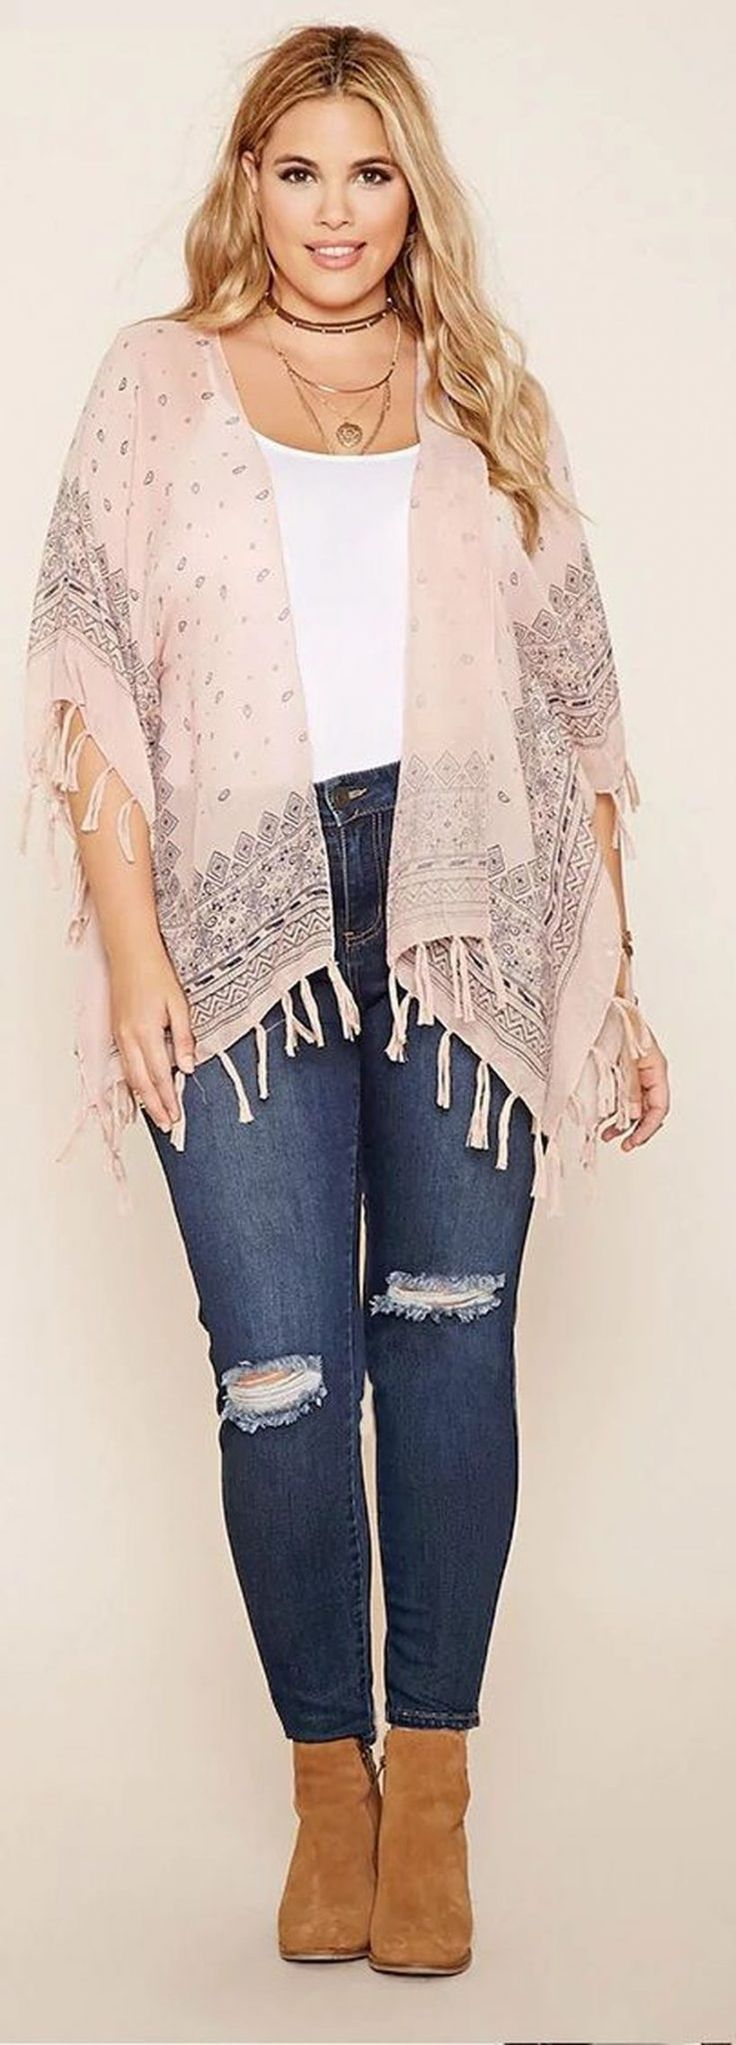 Best Boho Fashions Outfit Style for Plus Size that You Must Try https://fasbest.com/best-boho-fashions-outfit-style-plus-size-must-try/